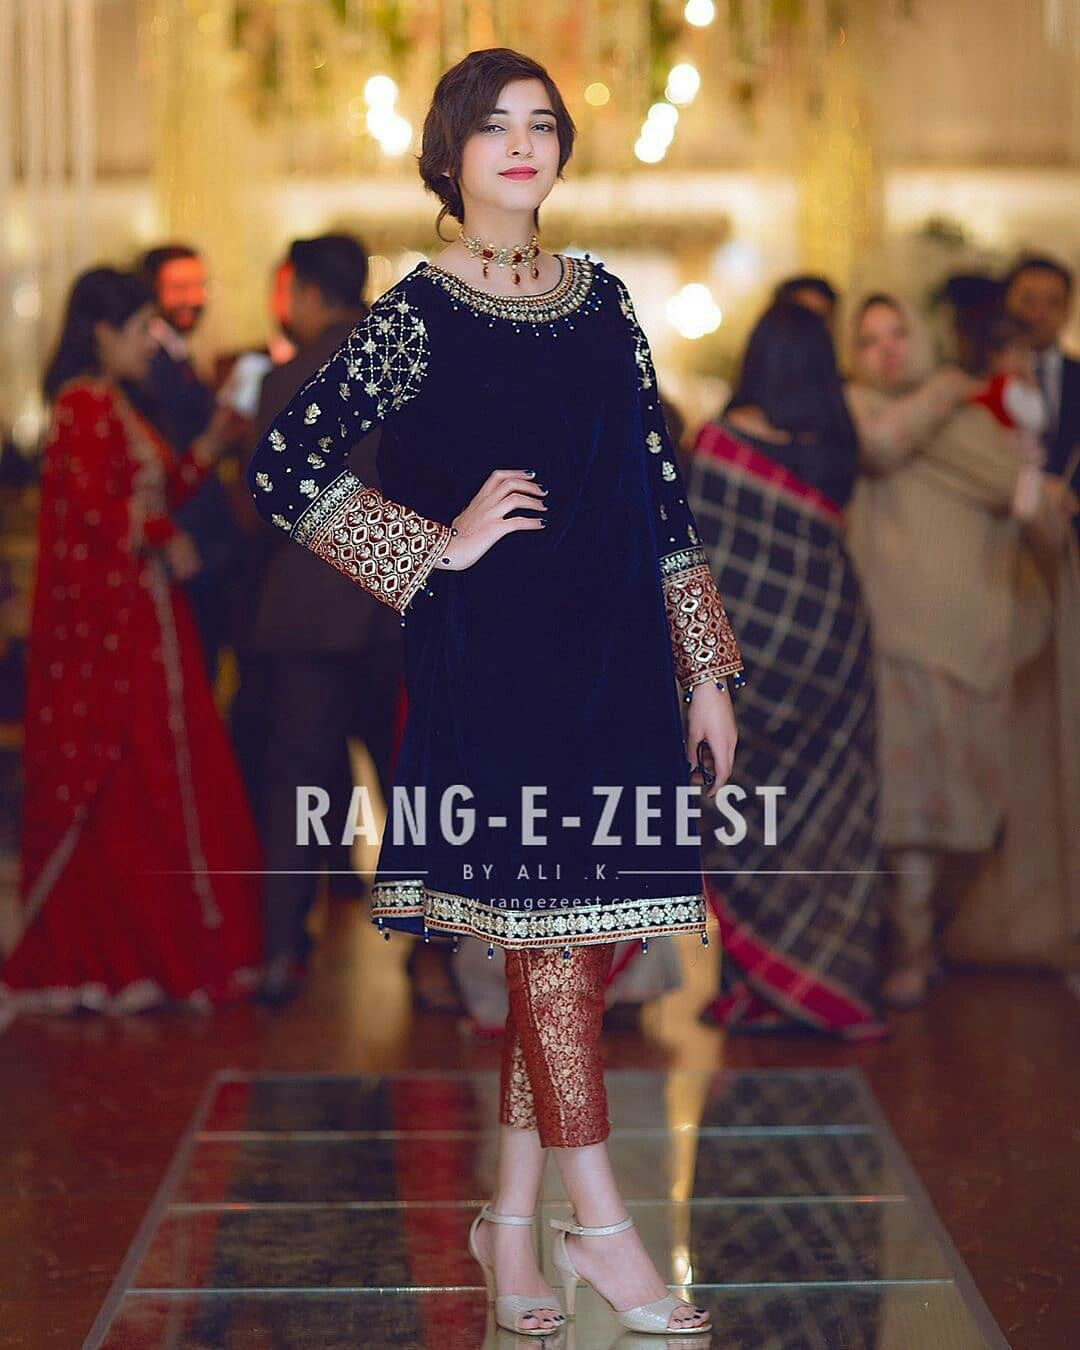 Pin by Syed zada on photos | Party wear indian dresses ...